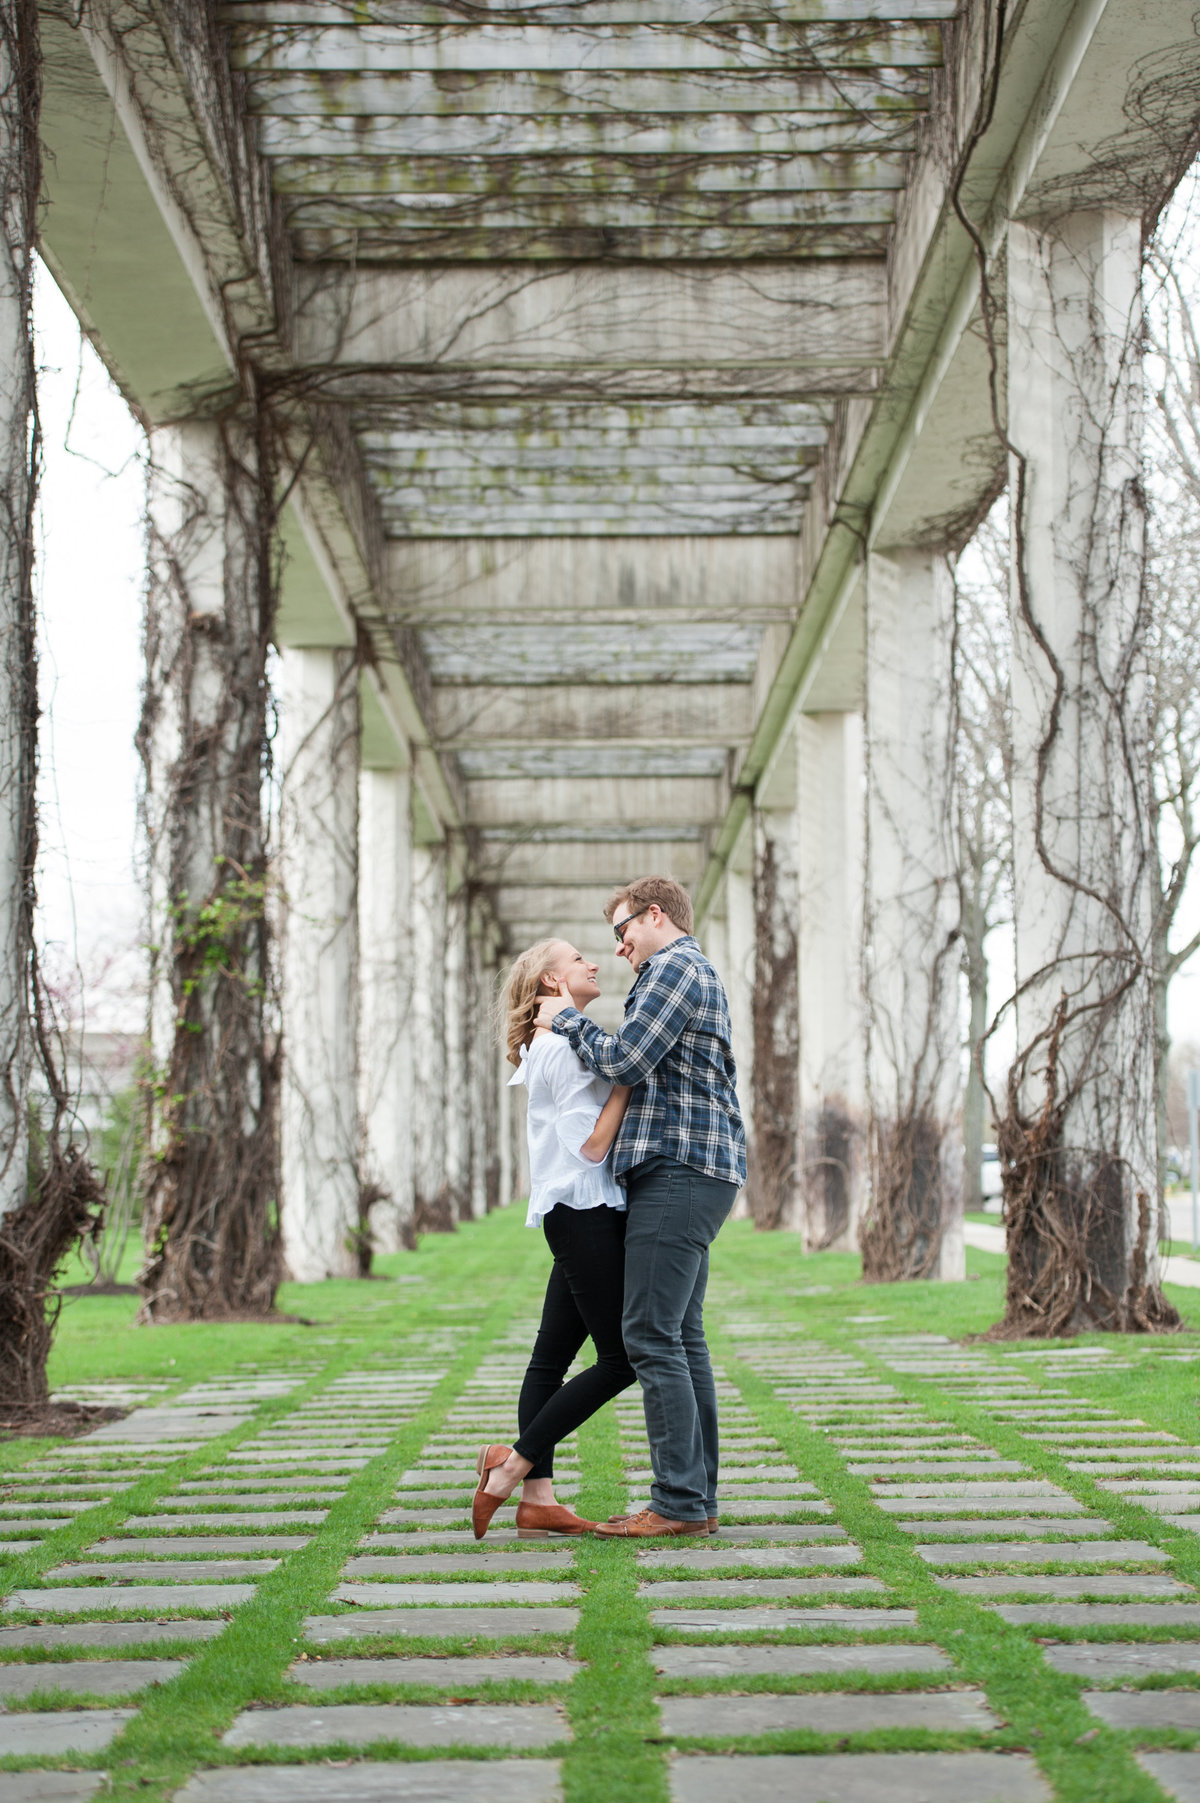 Engagement Photos in Central Indiana by Rachael Foster Photography (34 of 53)